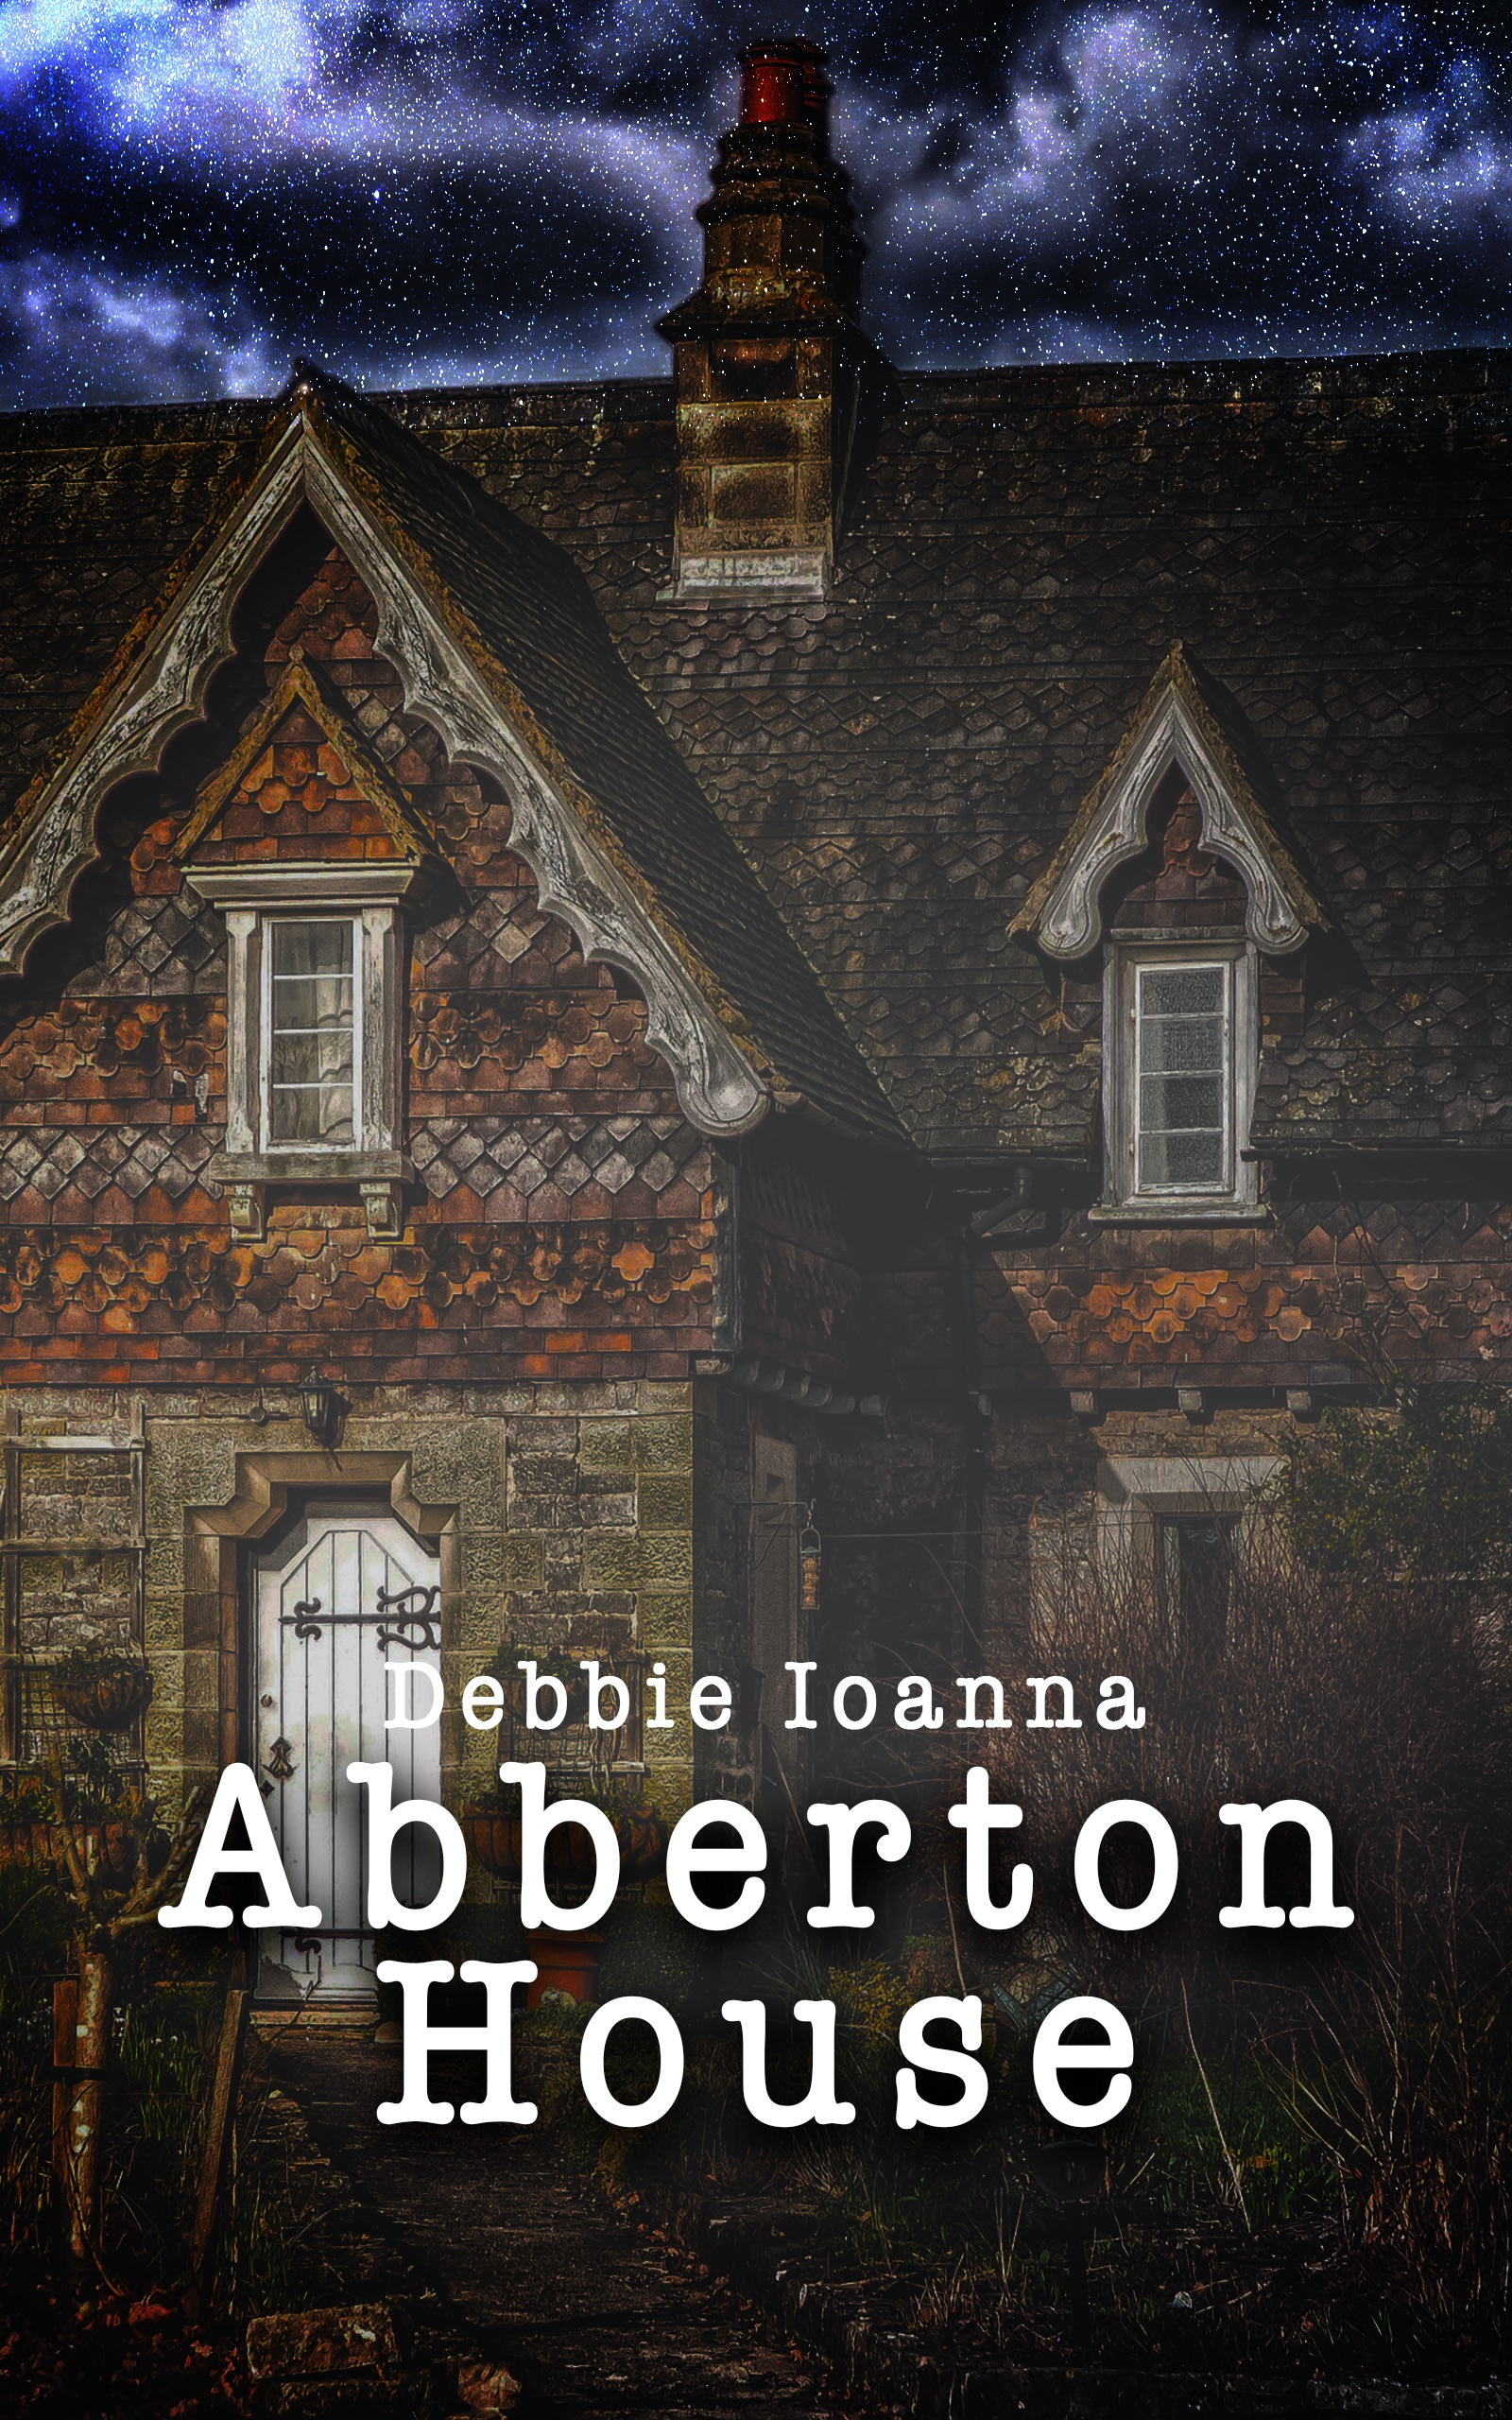 Abberton House by Debbie Ioanna @Debbie_Cleo @PantherPubs @damppebbles #BookReview #BlogTour